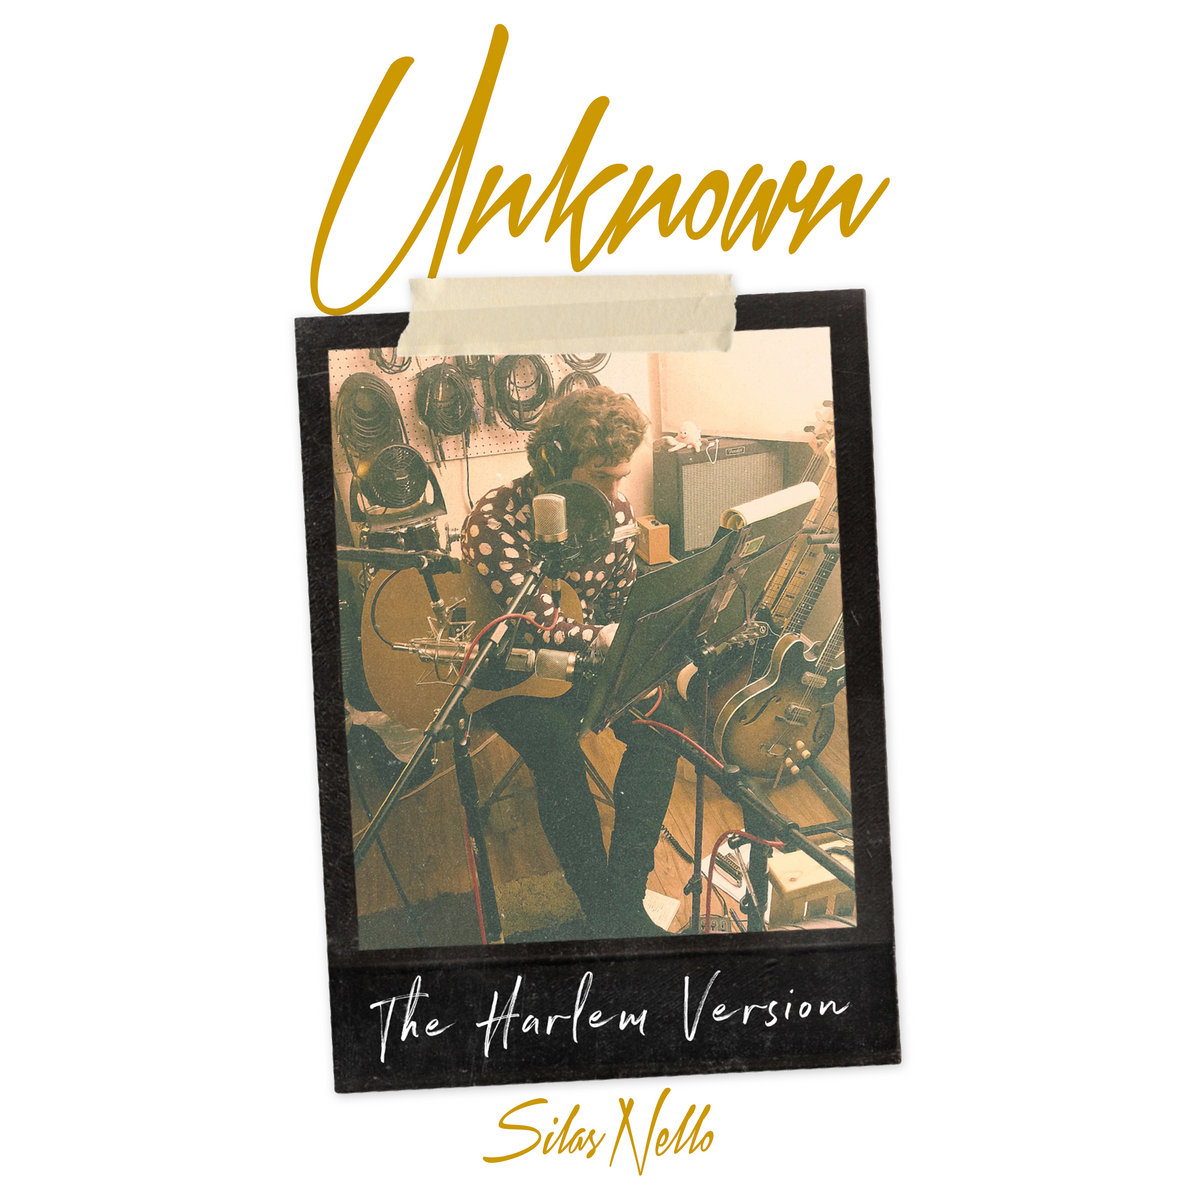 Unknown (The Harlem Version) by Silas Nello